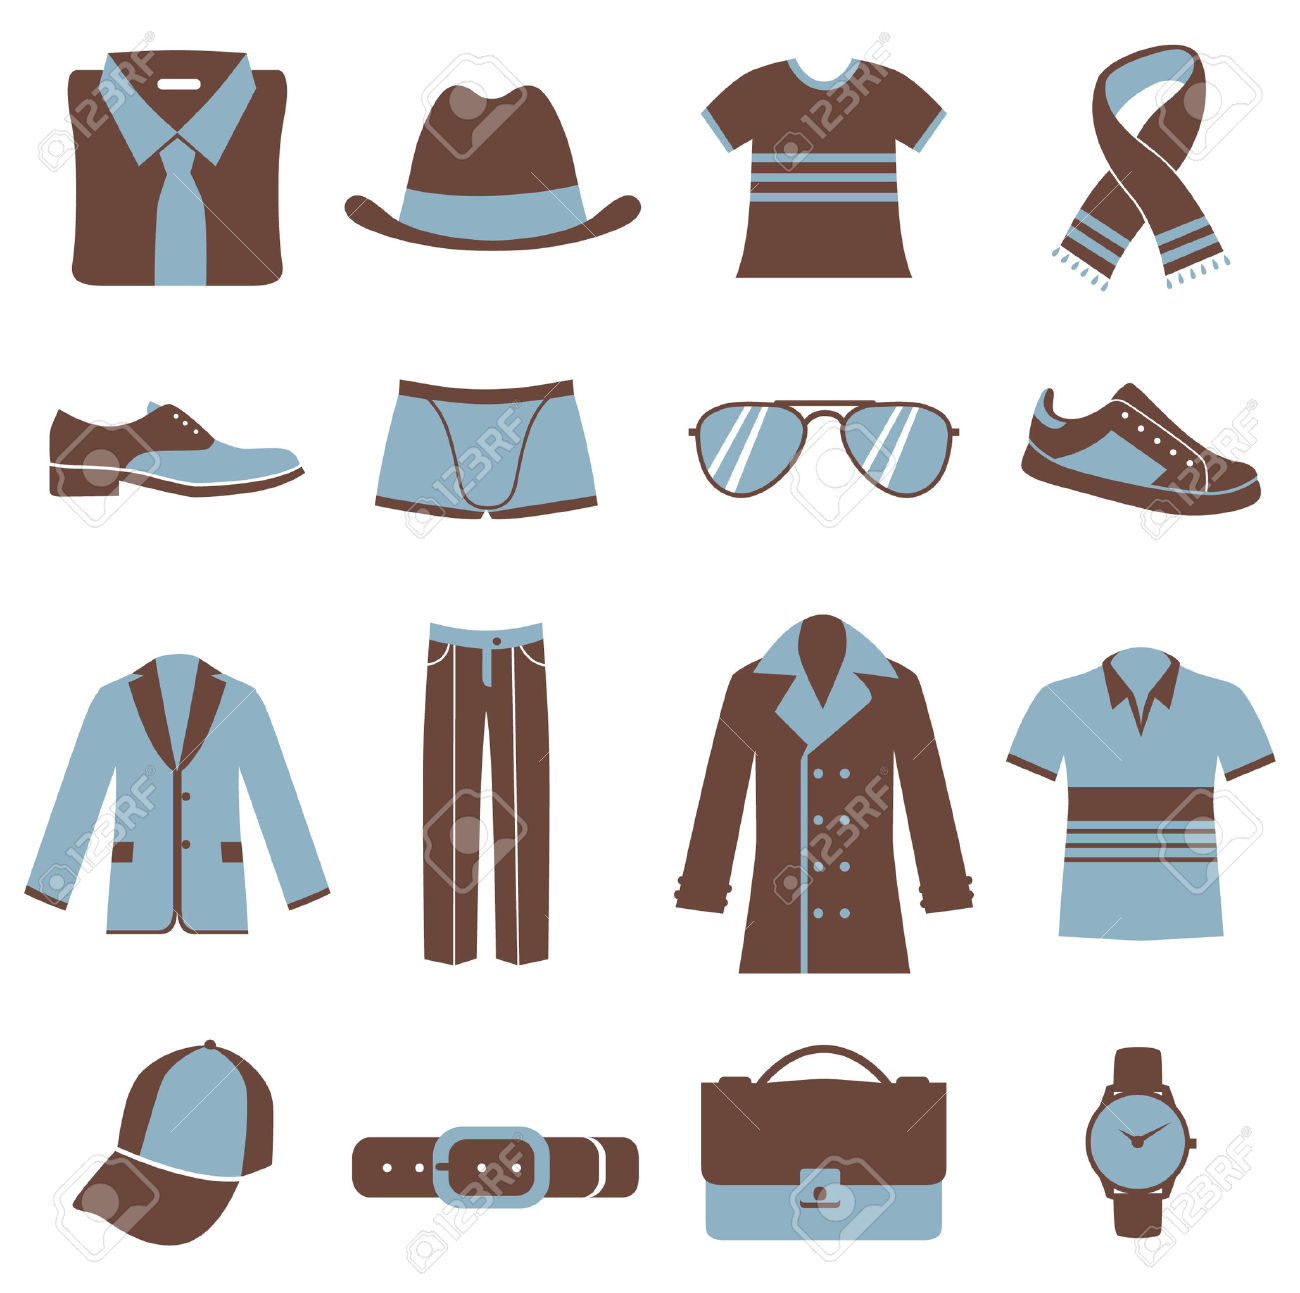 Men's clothing clipart - Clipground